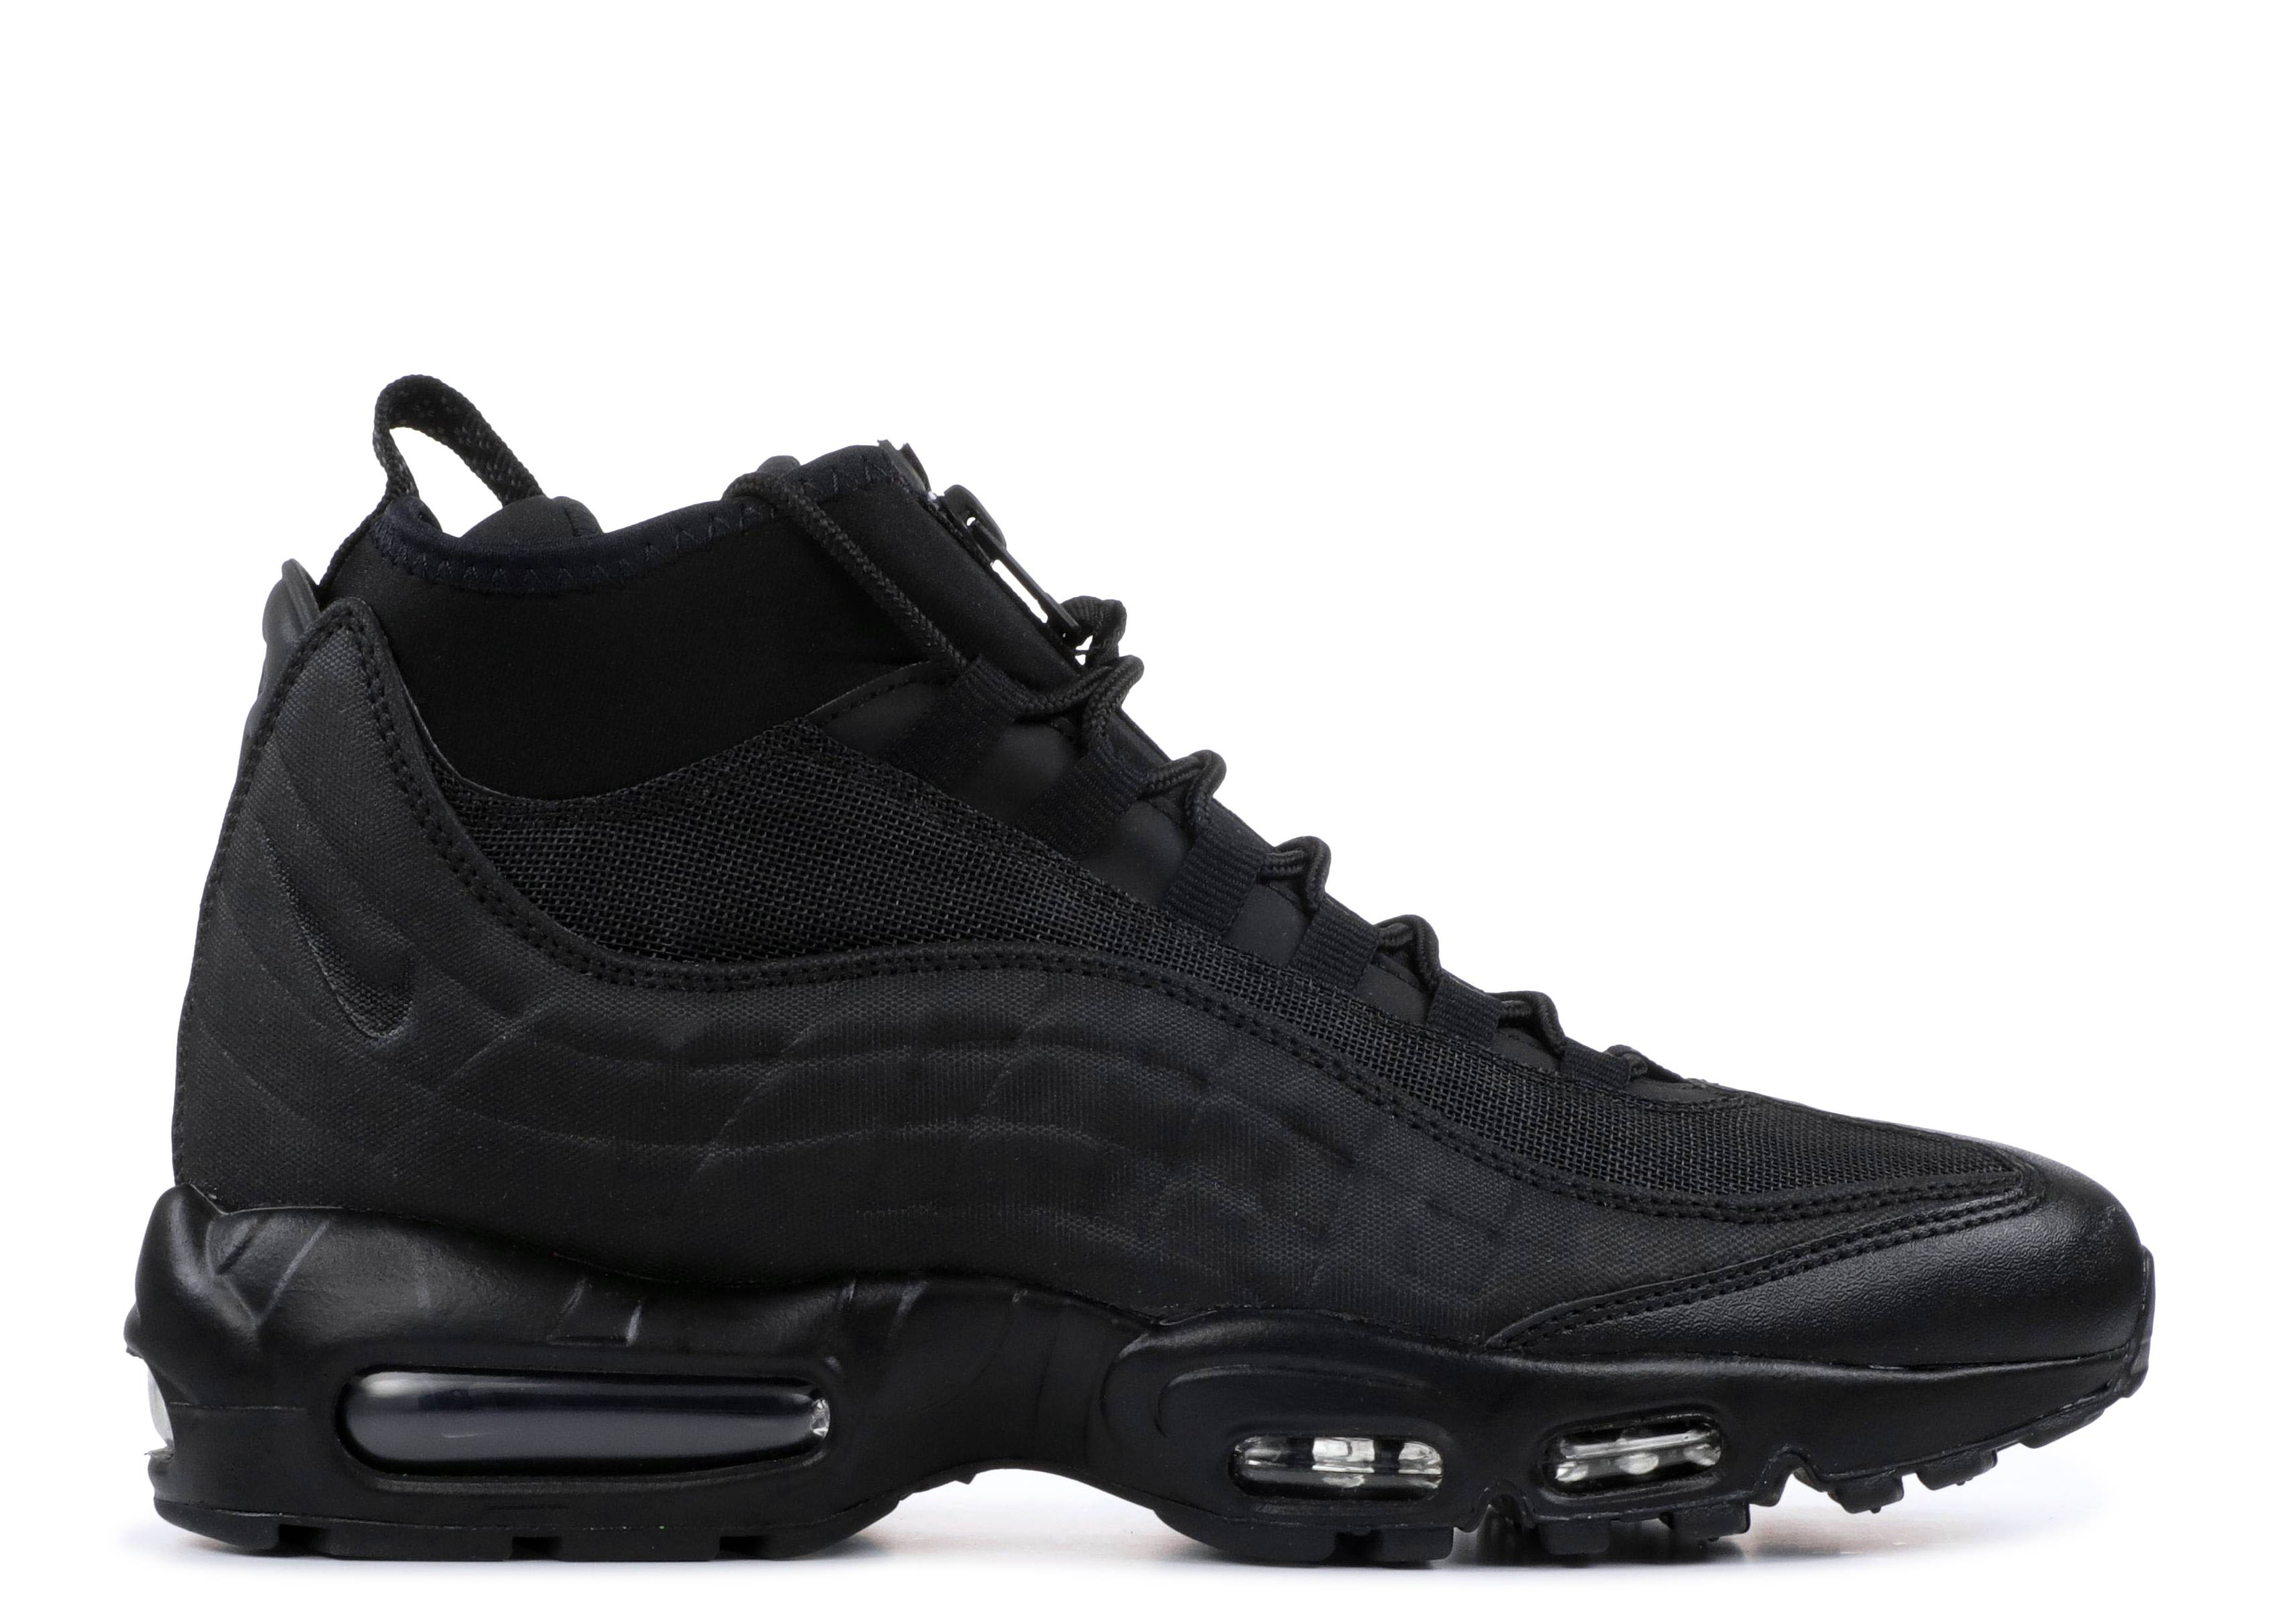 d401dab8ad Nike Air Max 95 Sneakerboot - Nike - 806809 002 - black/black ...